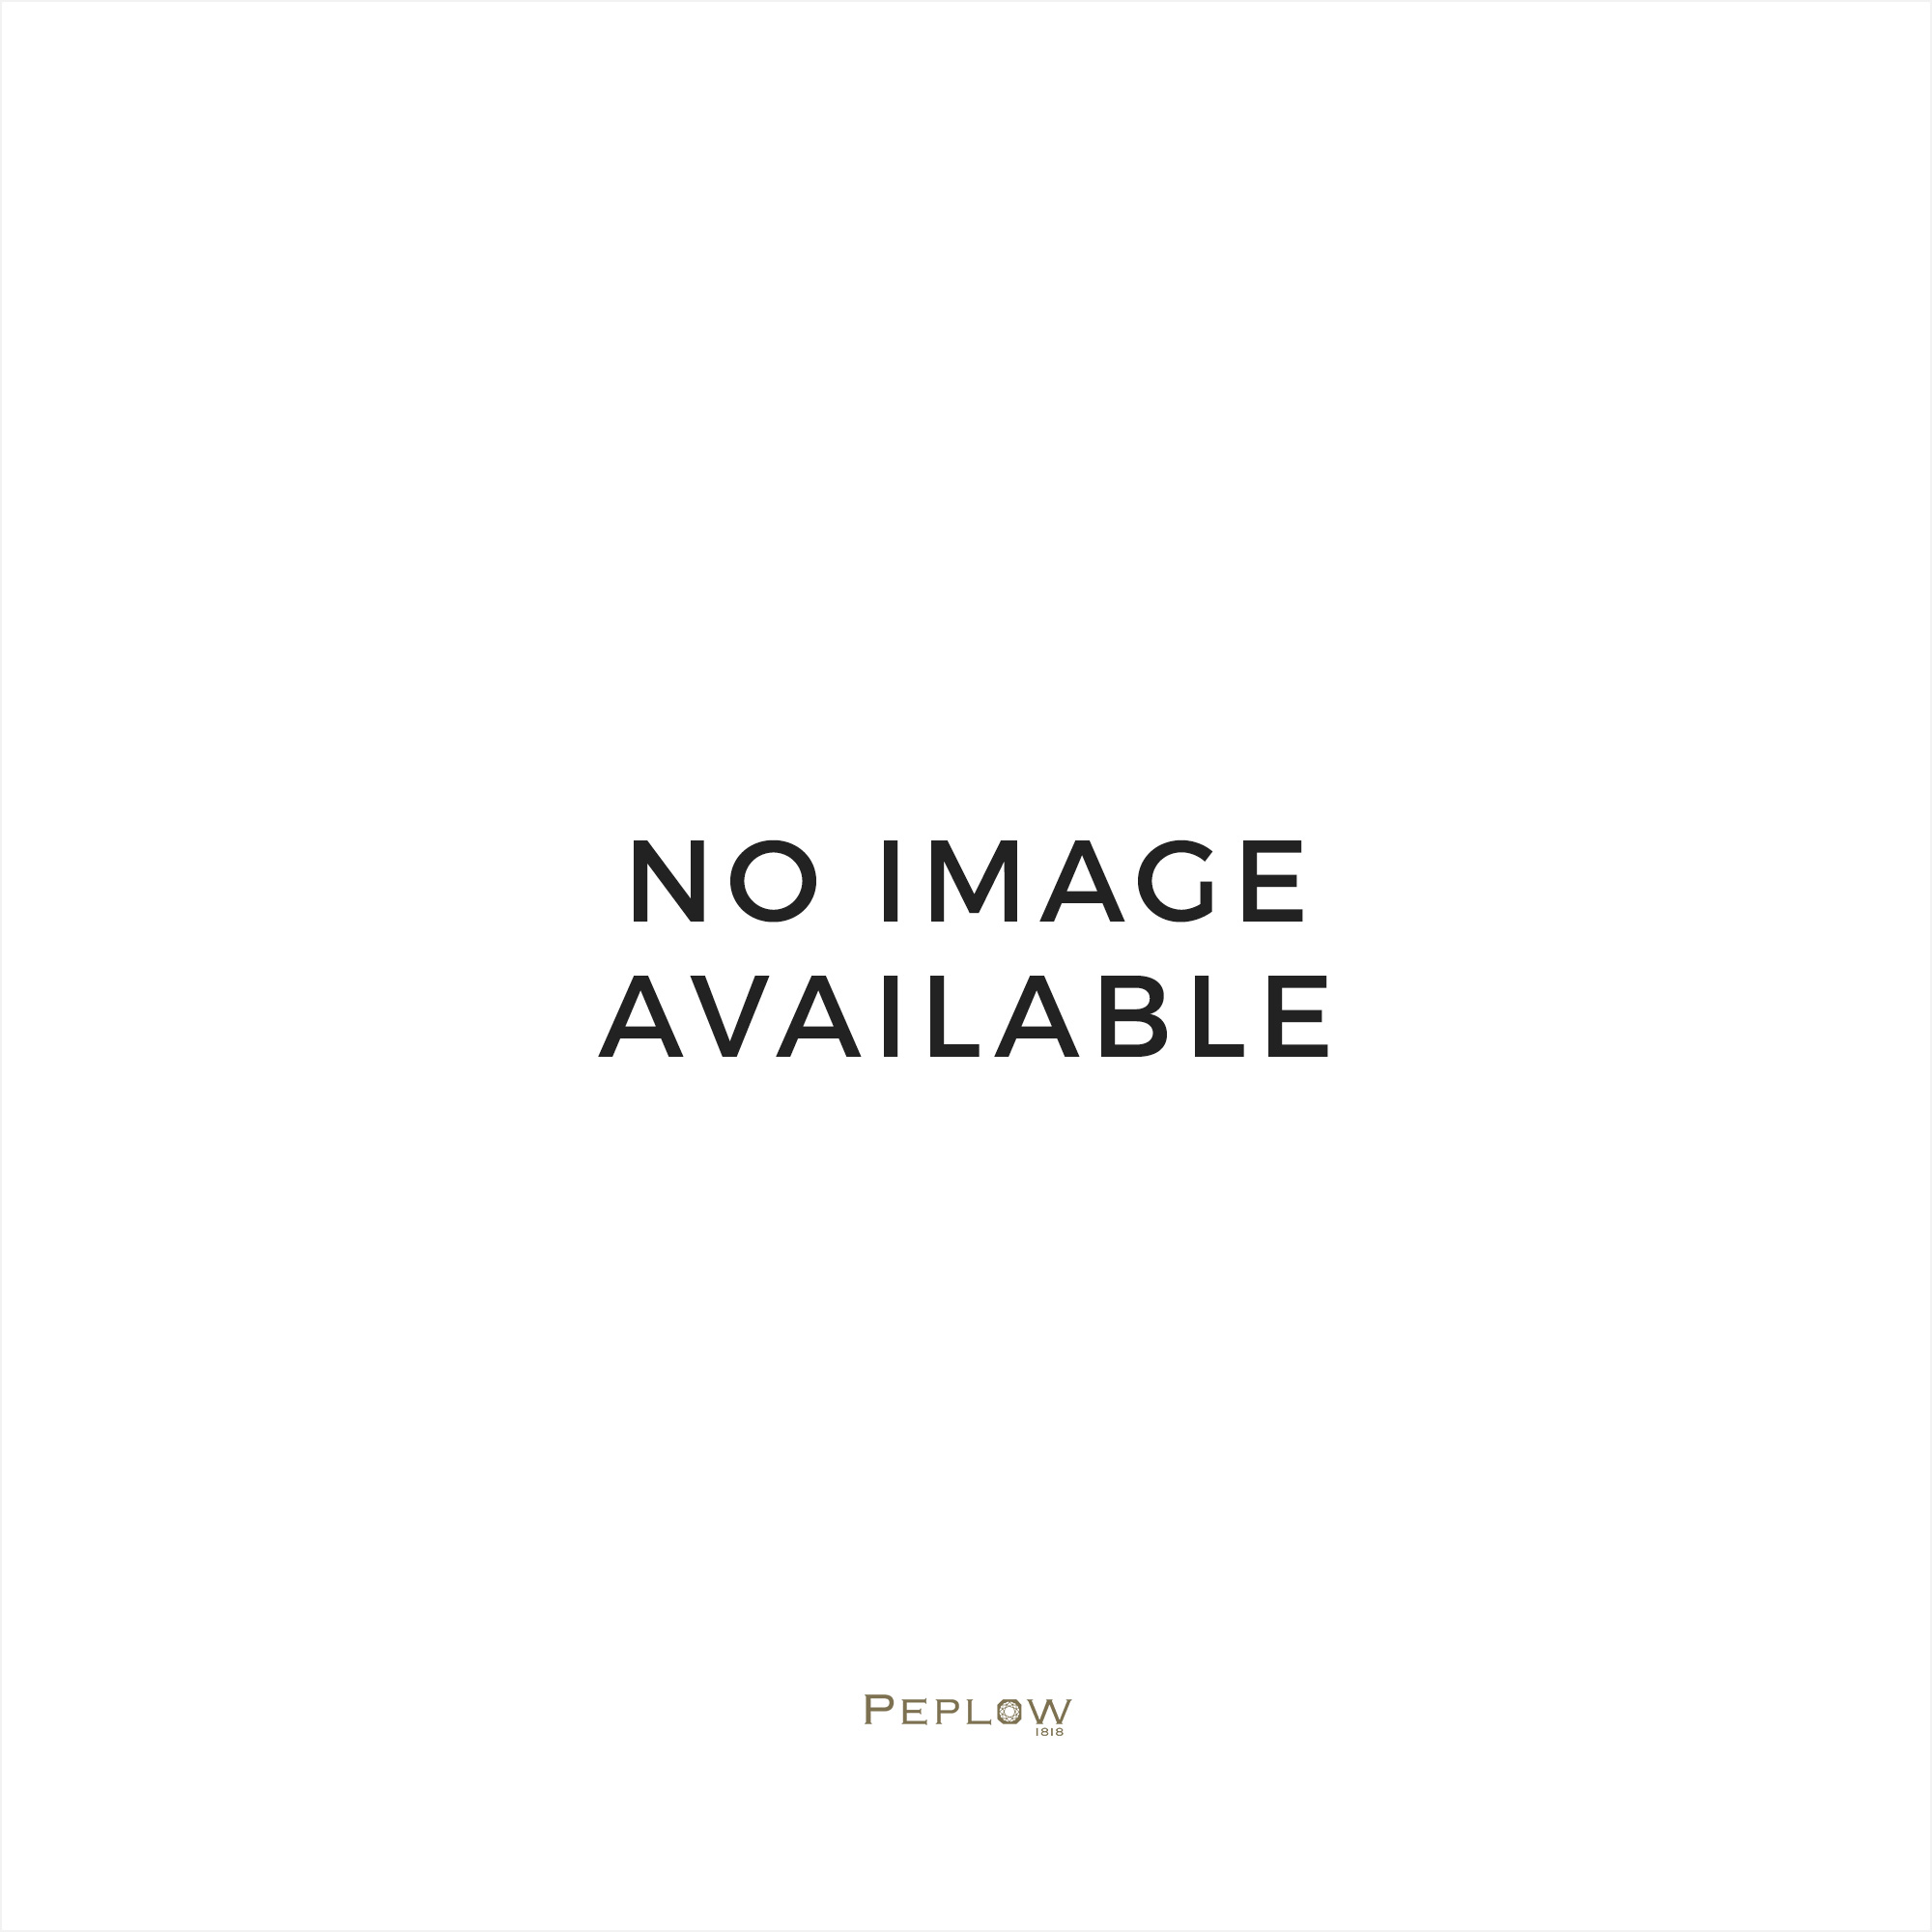 Festina Originals Tour Edition Chronograph watch with red strap